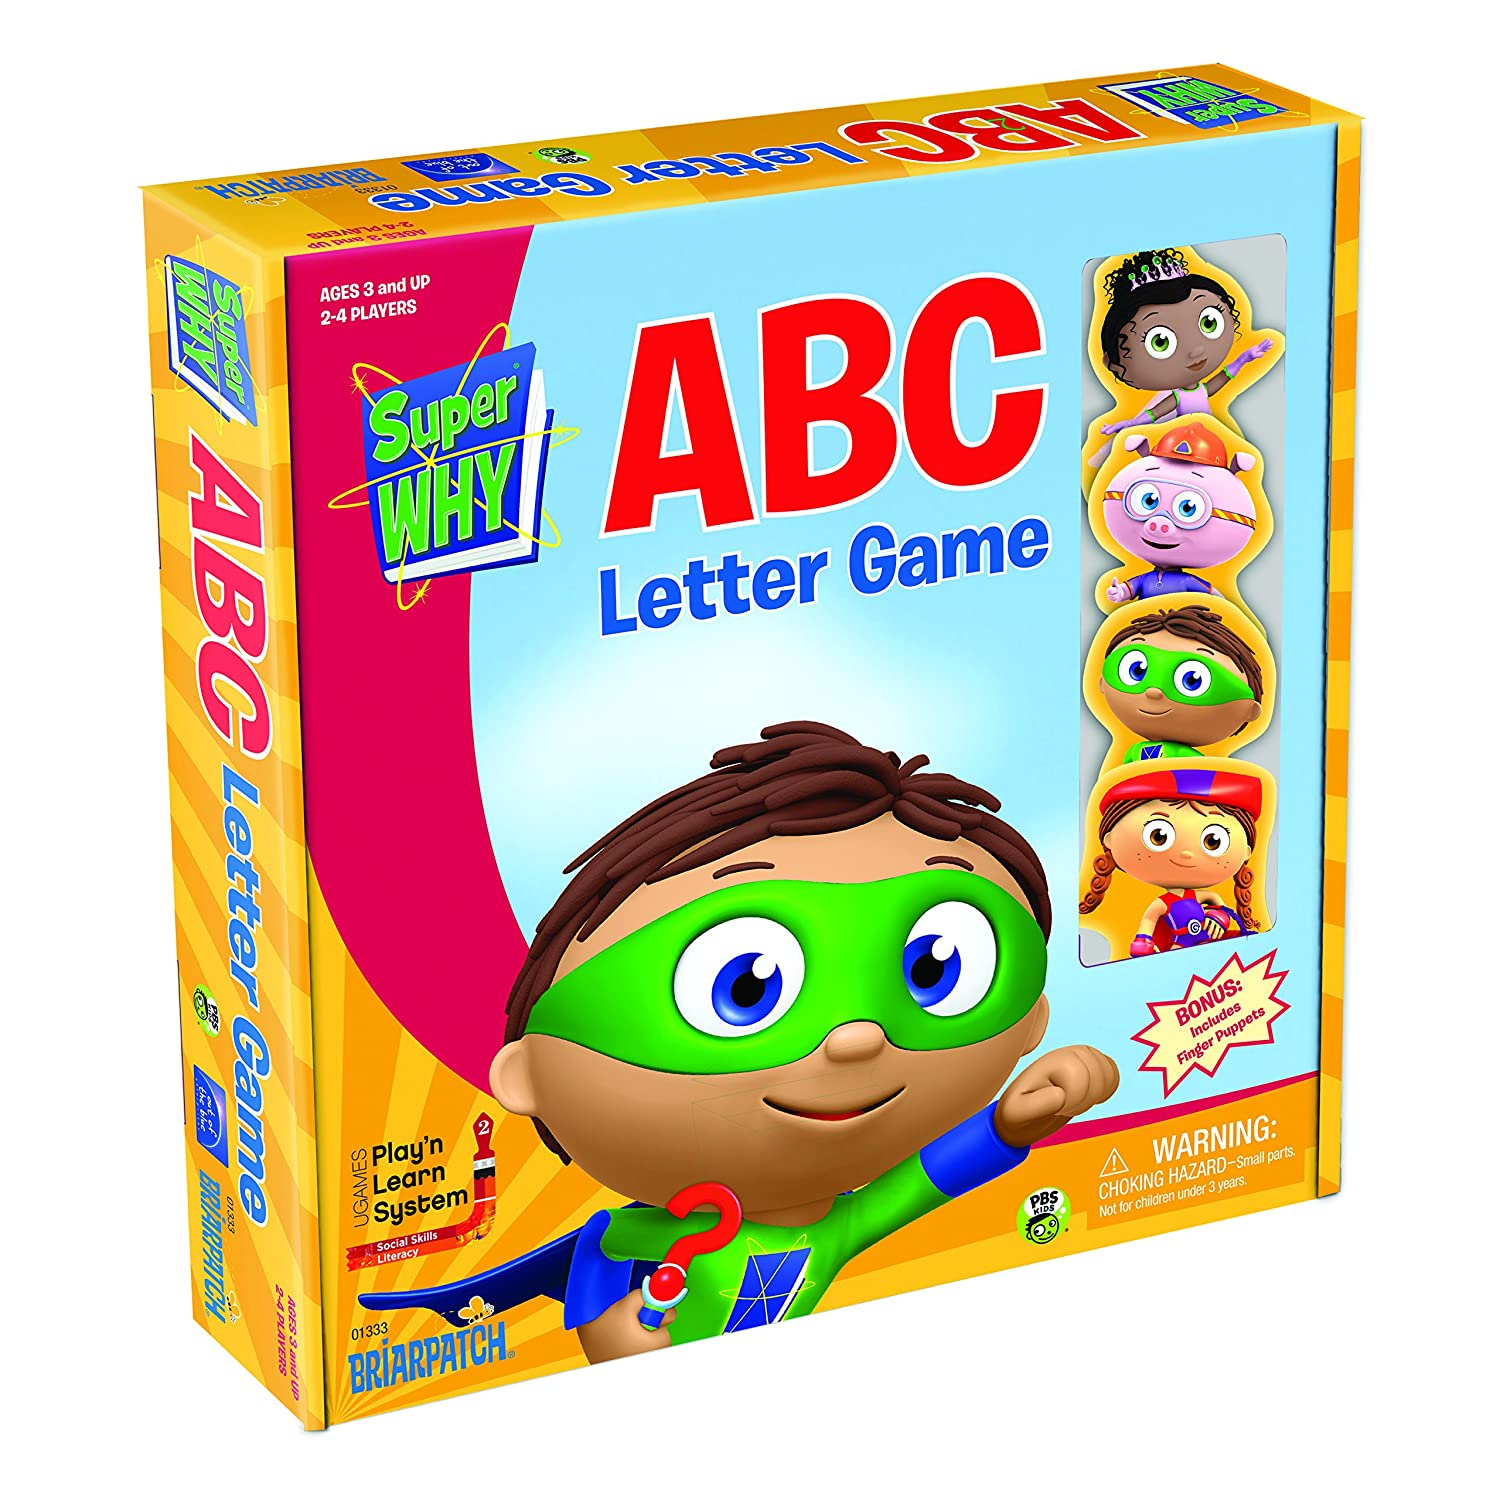 Amazon Super WHY ABC Letter Game Toys & Games